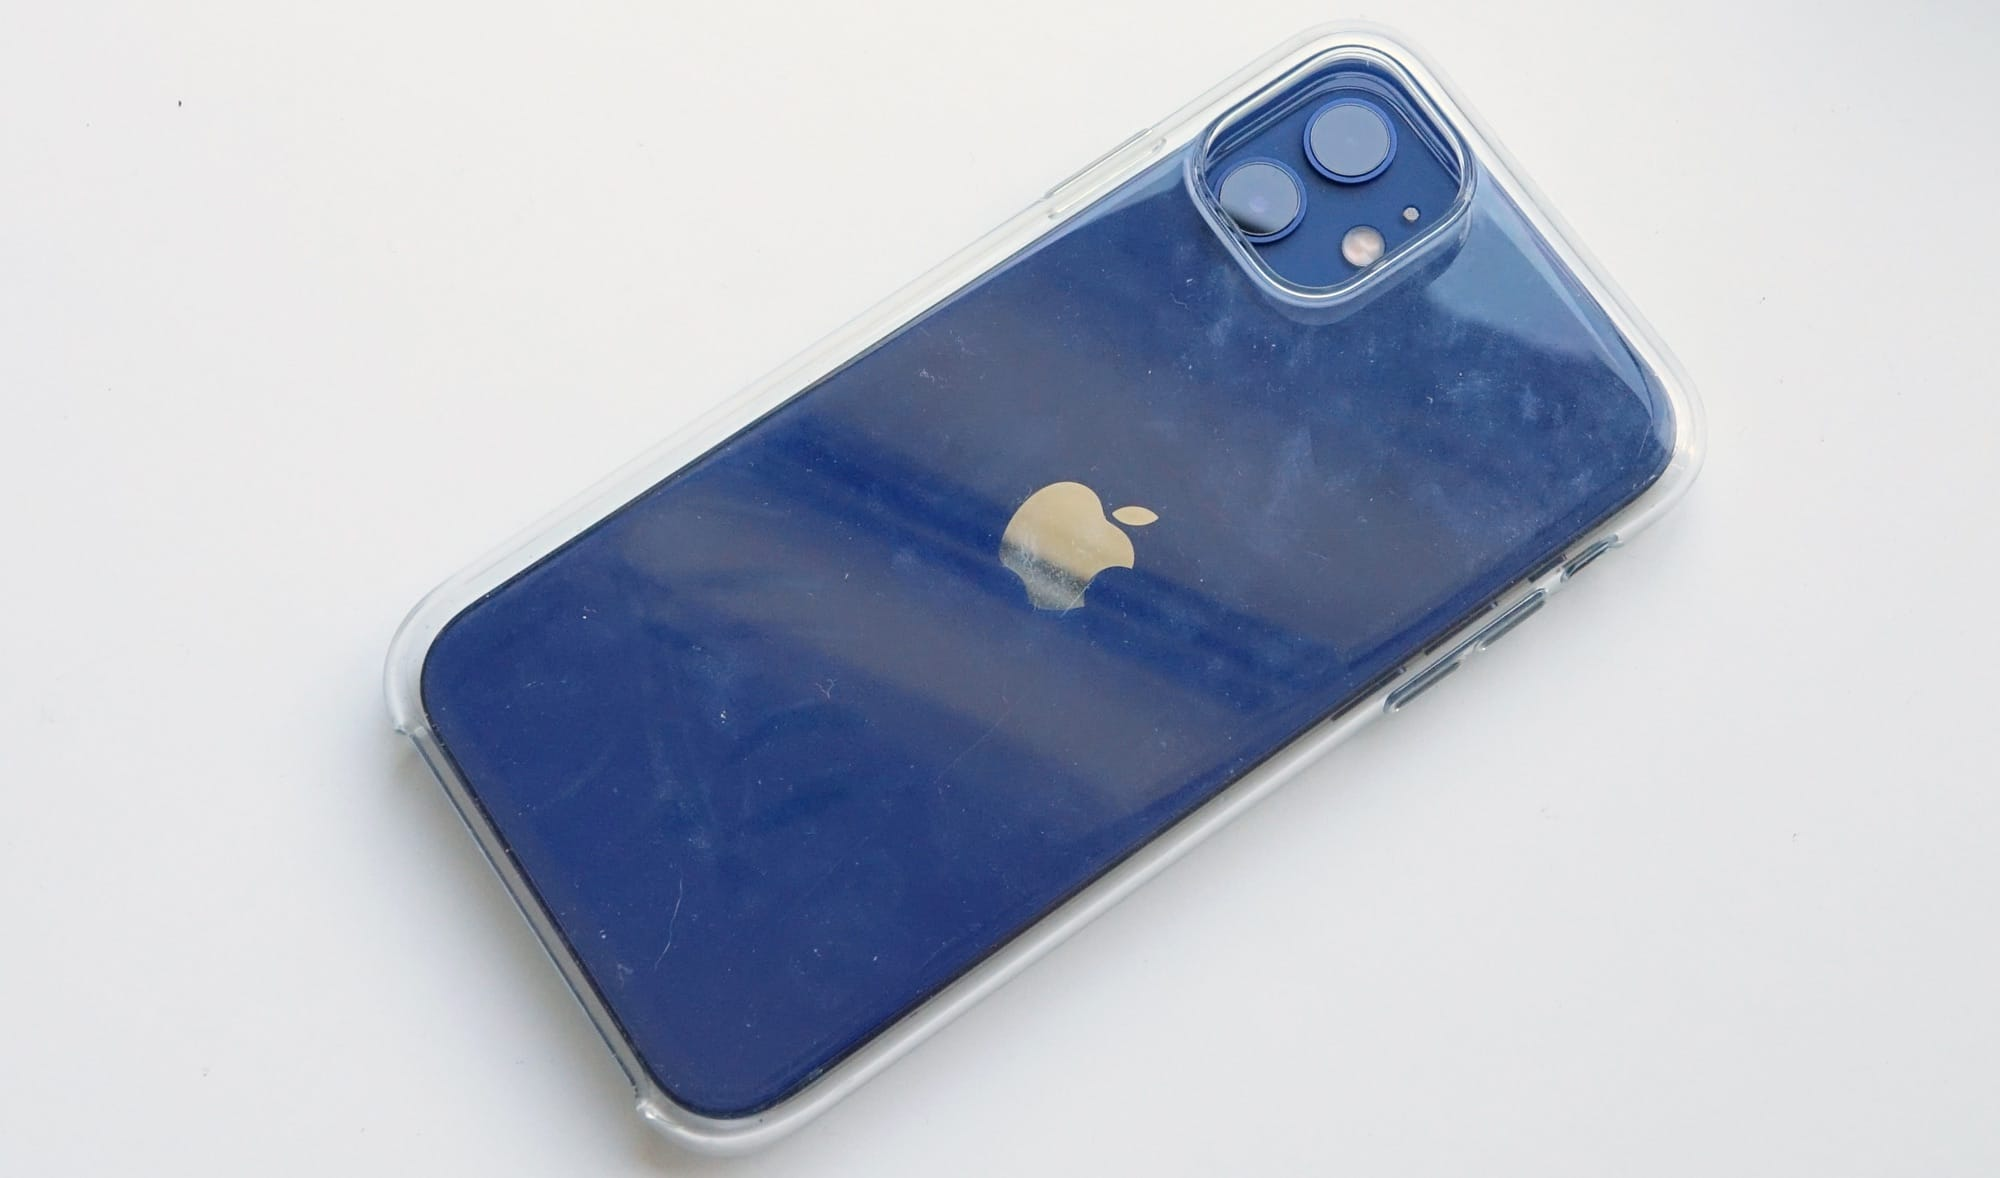 The iPhone 12 in an iPhone 11 case